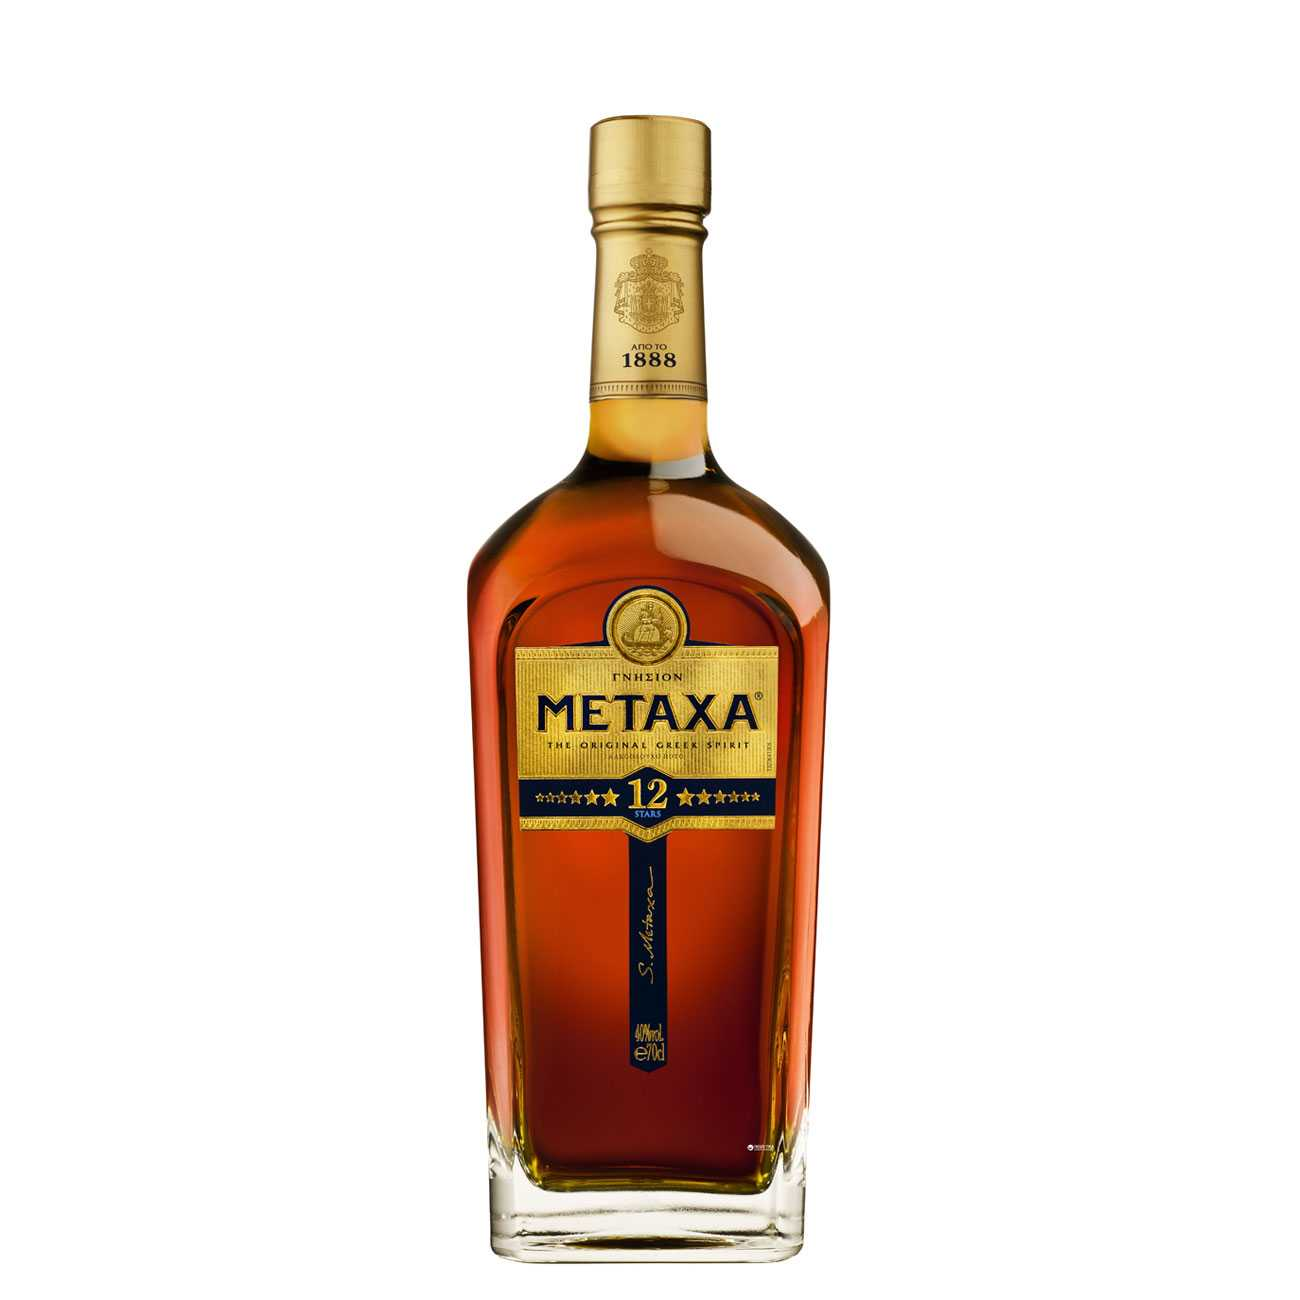 Brandy, 12 STAR GRAND OLIYMPIAN RESERVE 700 ML, Metaxa